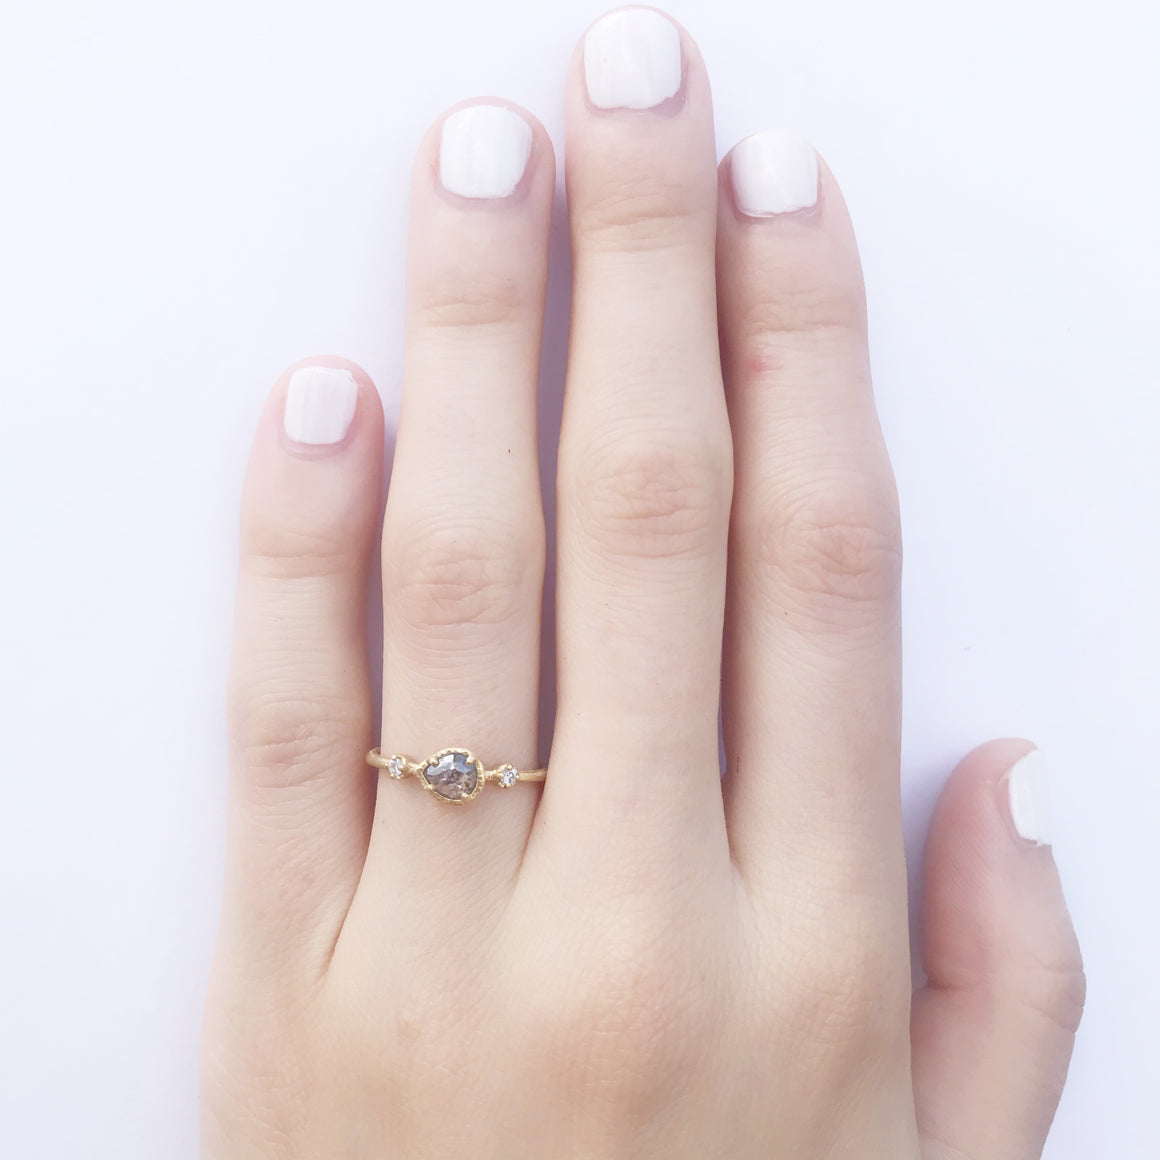 East-West Salt + Pepper Prong Ring